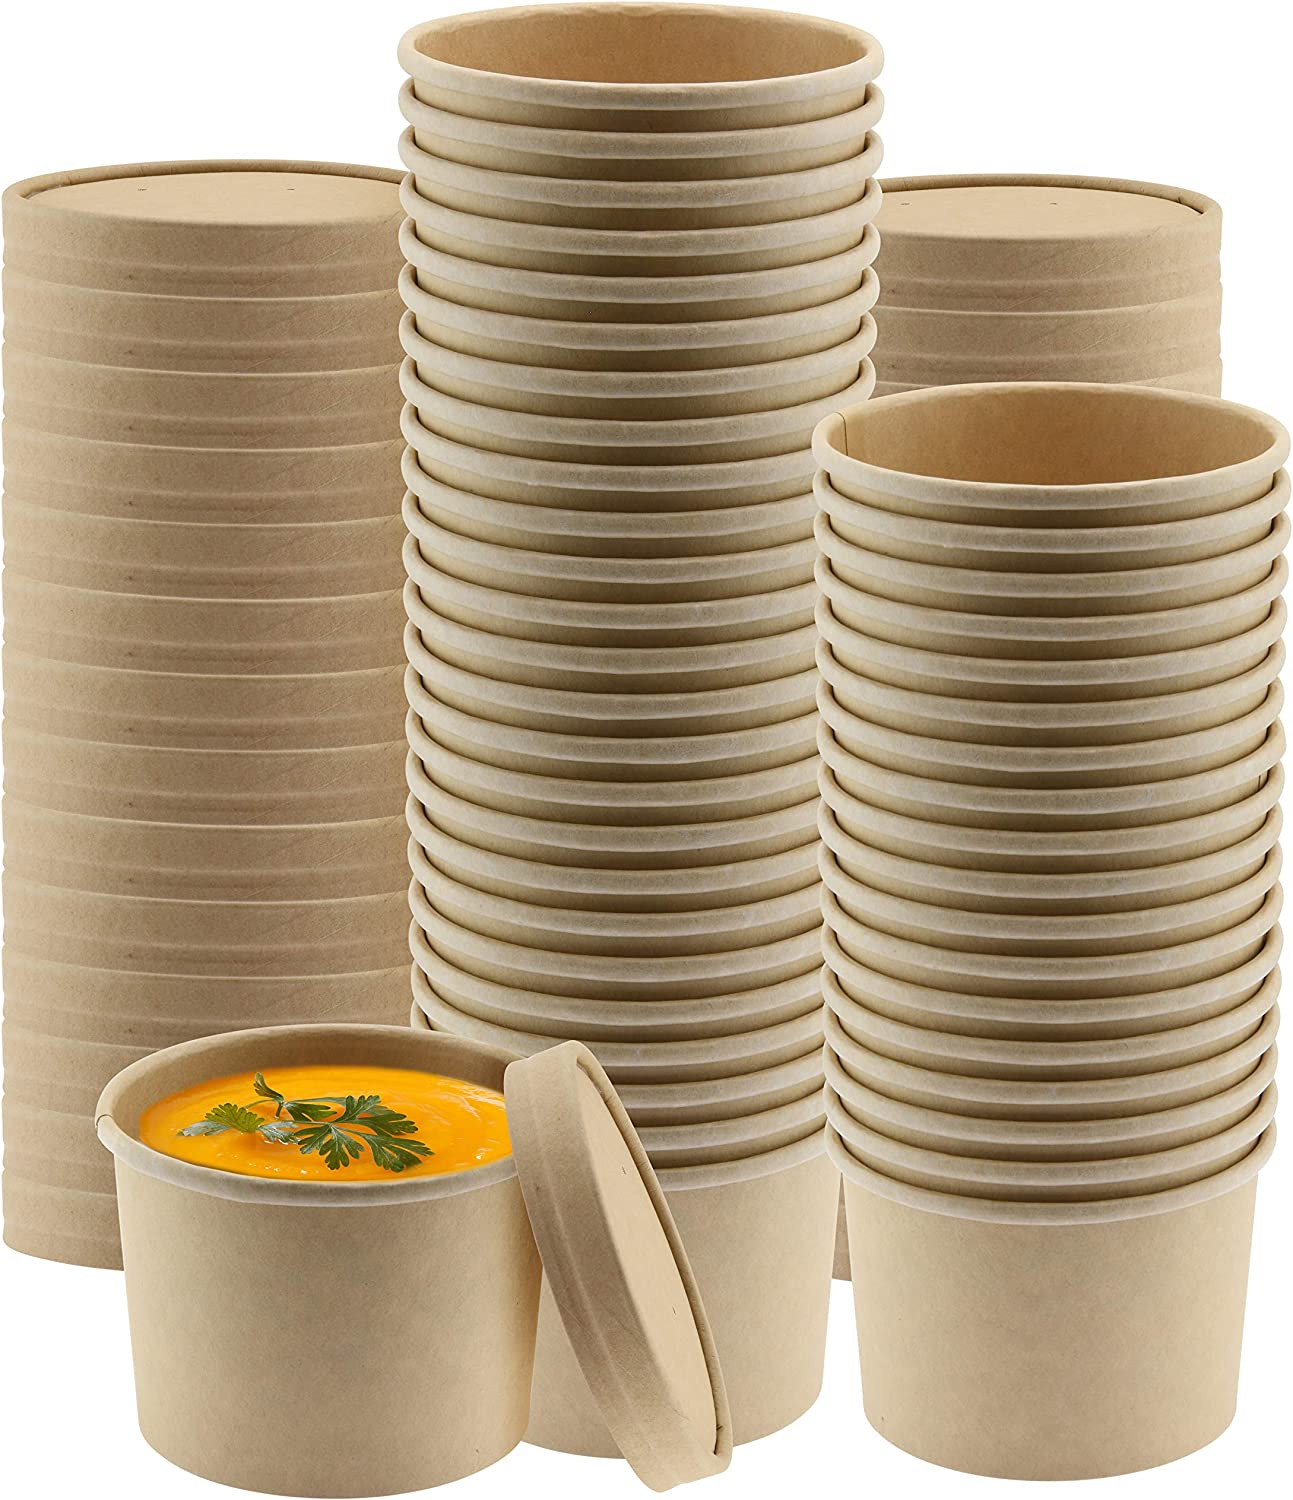 NYHI Kraft Paper Soup Storage Containers With Lids | 12 Ounce Insulated Take Out Disposable Food Storage Container Cups For Hot & Cold Foods | Eco Friendly To Go Soup Bowls With Vented Lid | 50 Pack